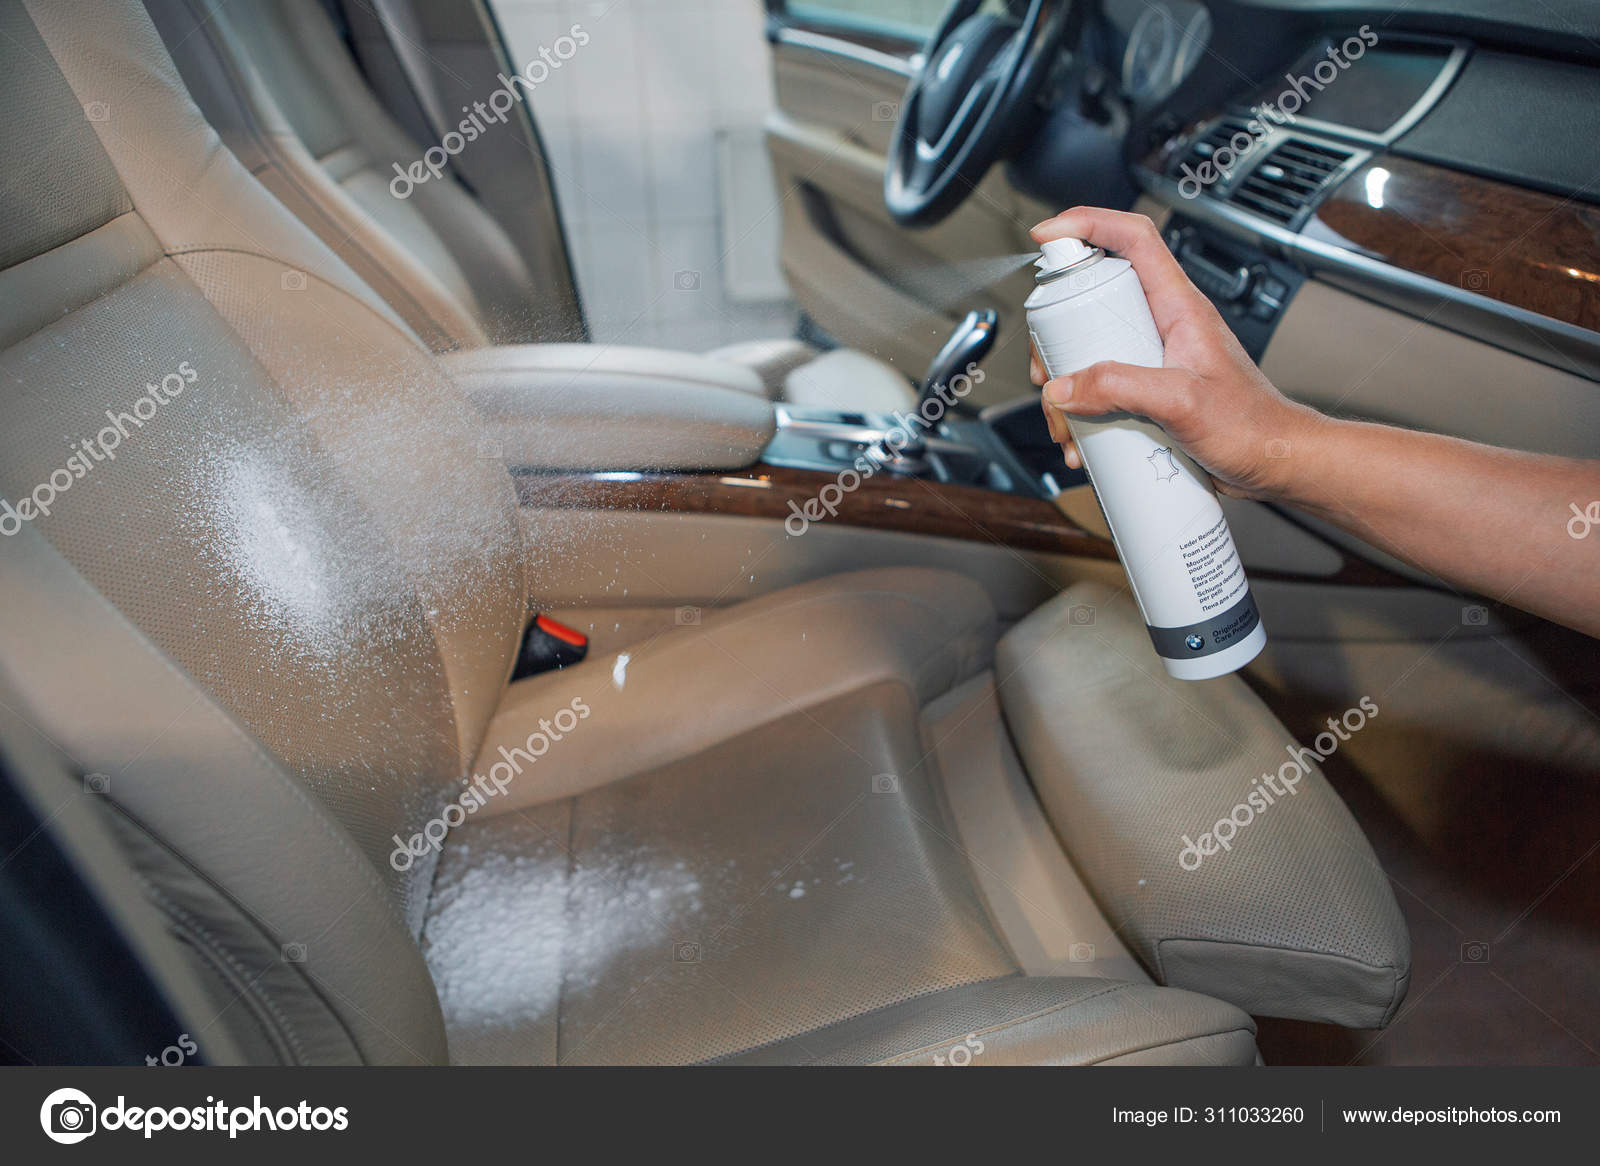 Dirty Car Interior Cleaning The White Leather Seat Of The Machine With A Special Cleaner White Foam From The Cylinder Wiping With A Cloth Stock Photo Image By C Aaalll 311033260